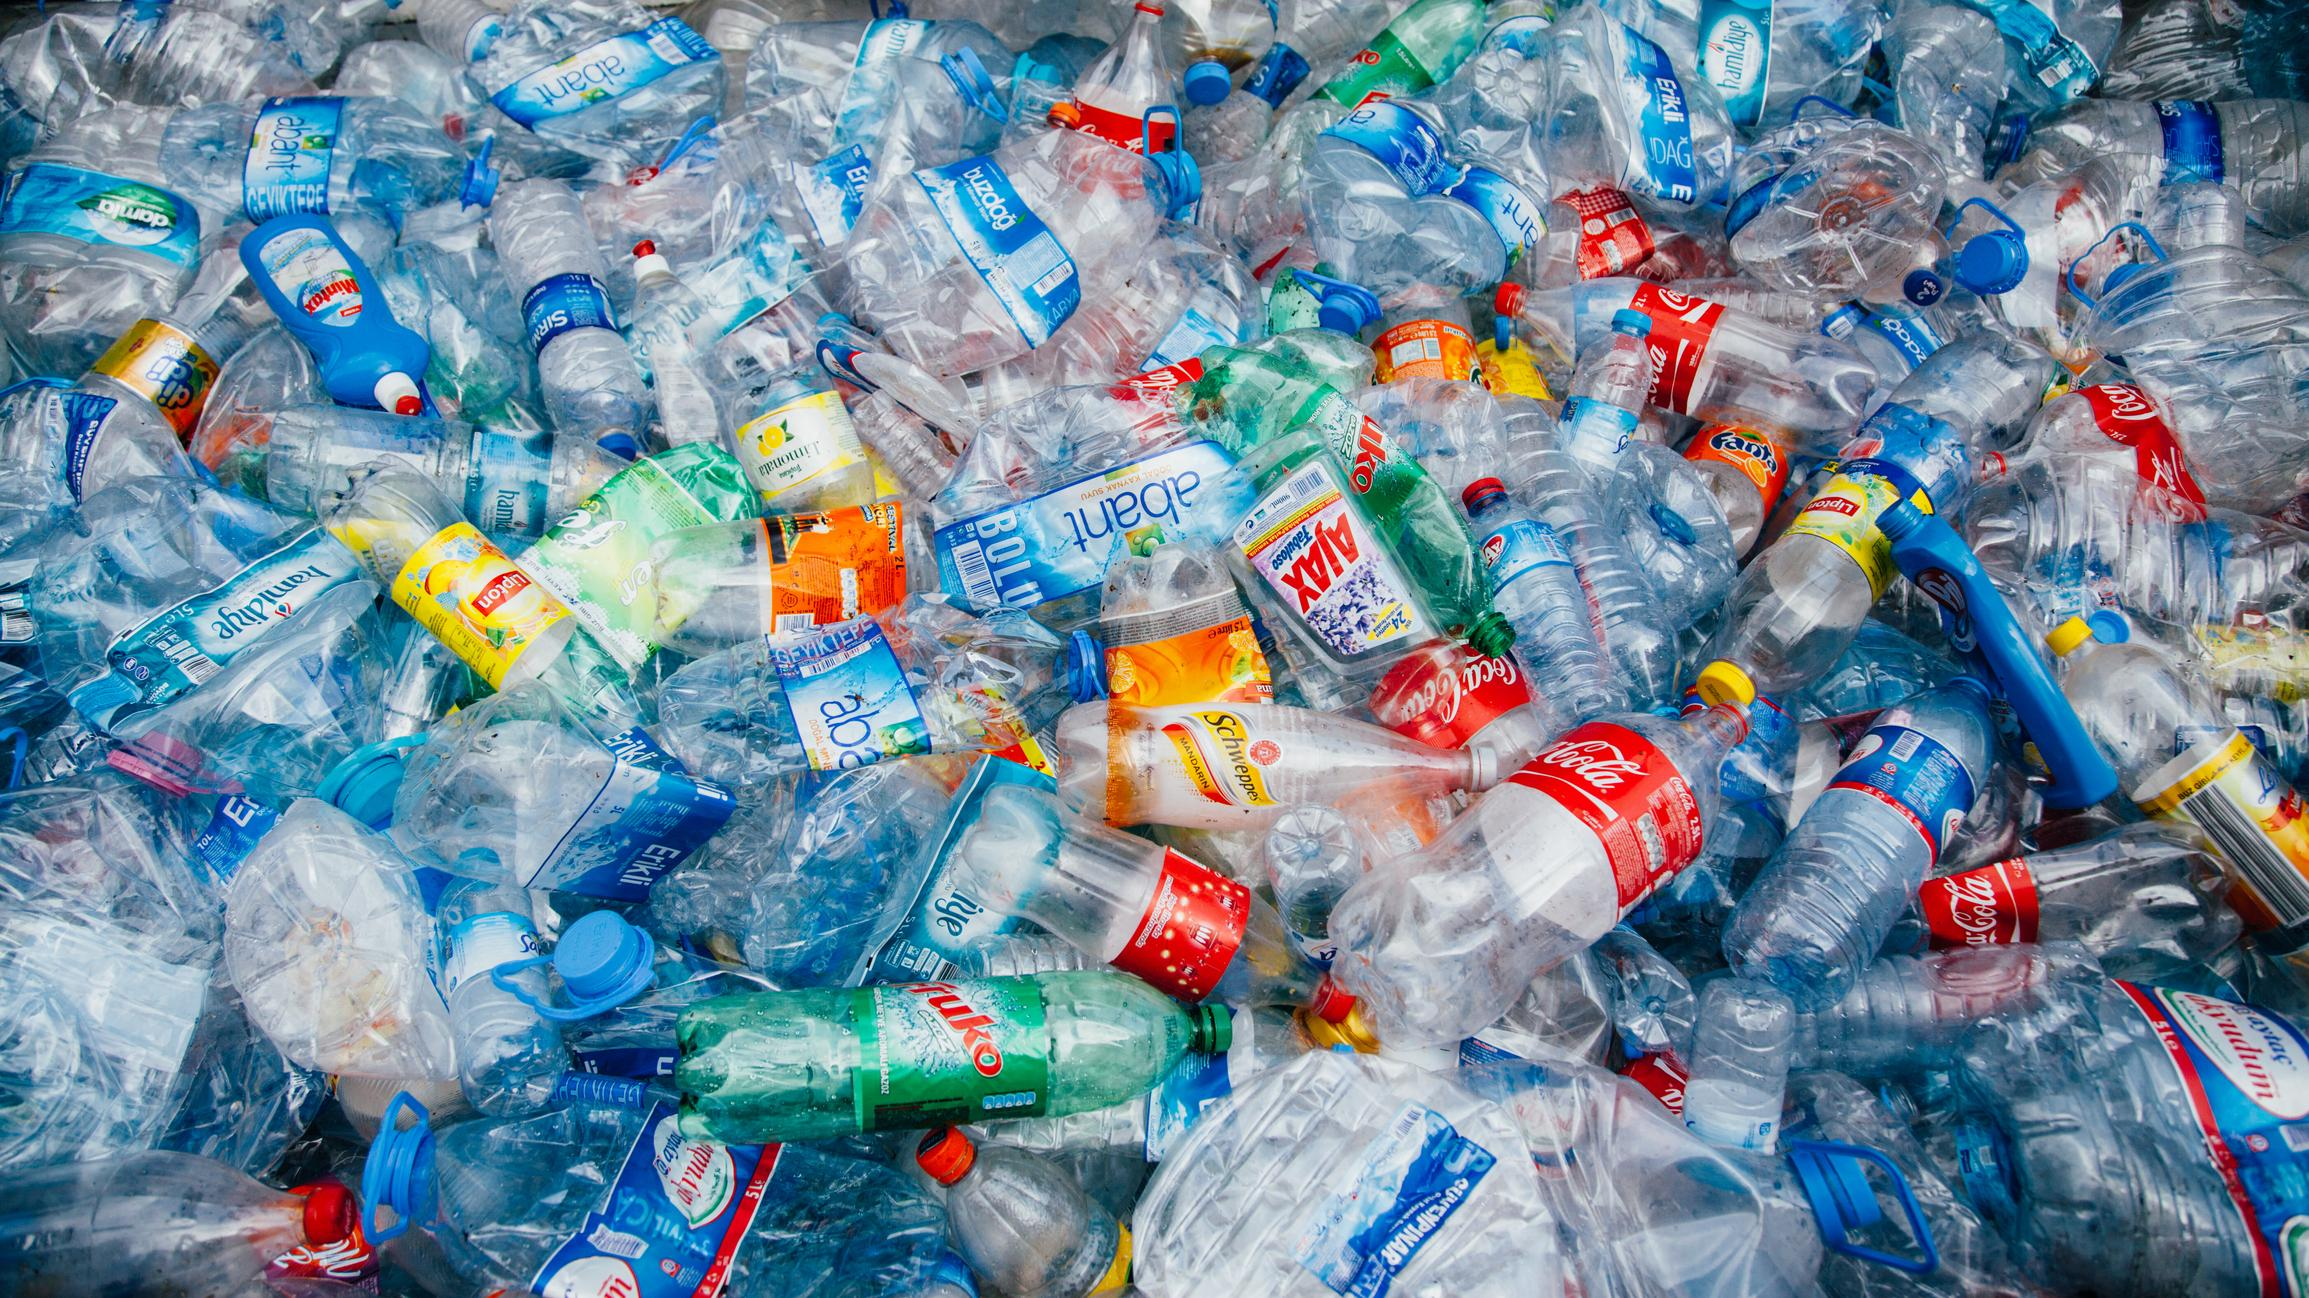 Plastic waste could be turned into hydrogen for fueling cars